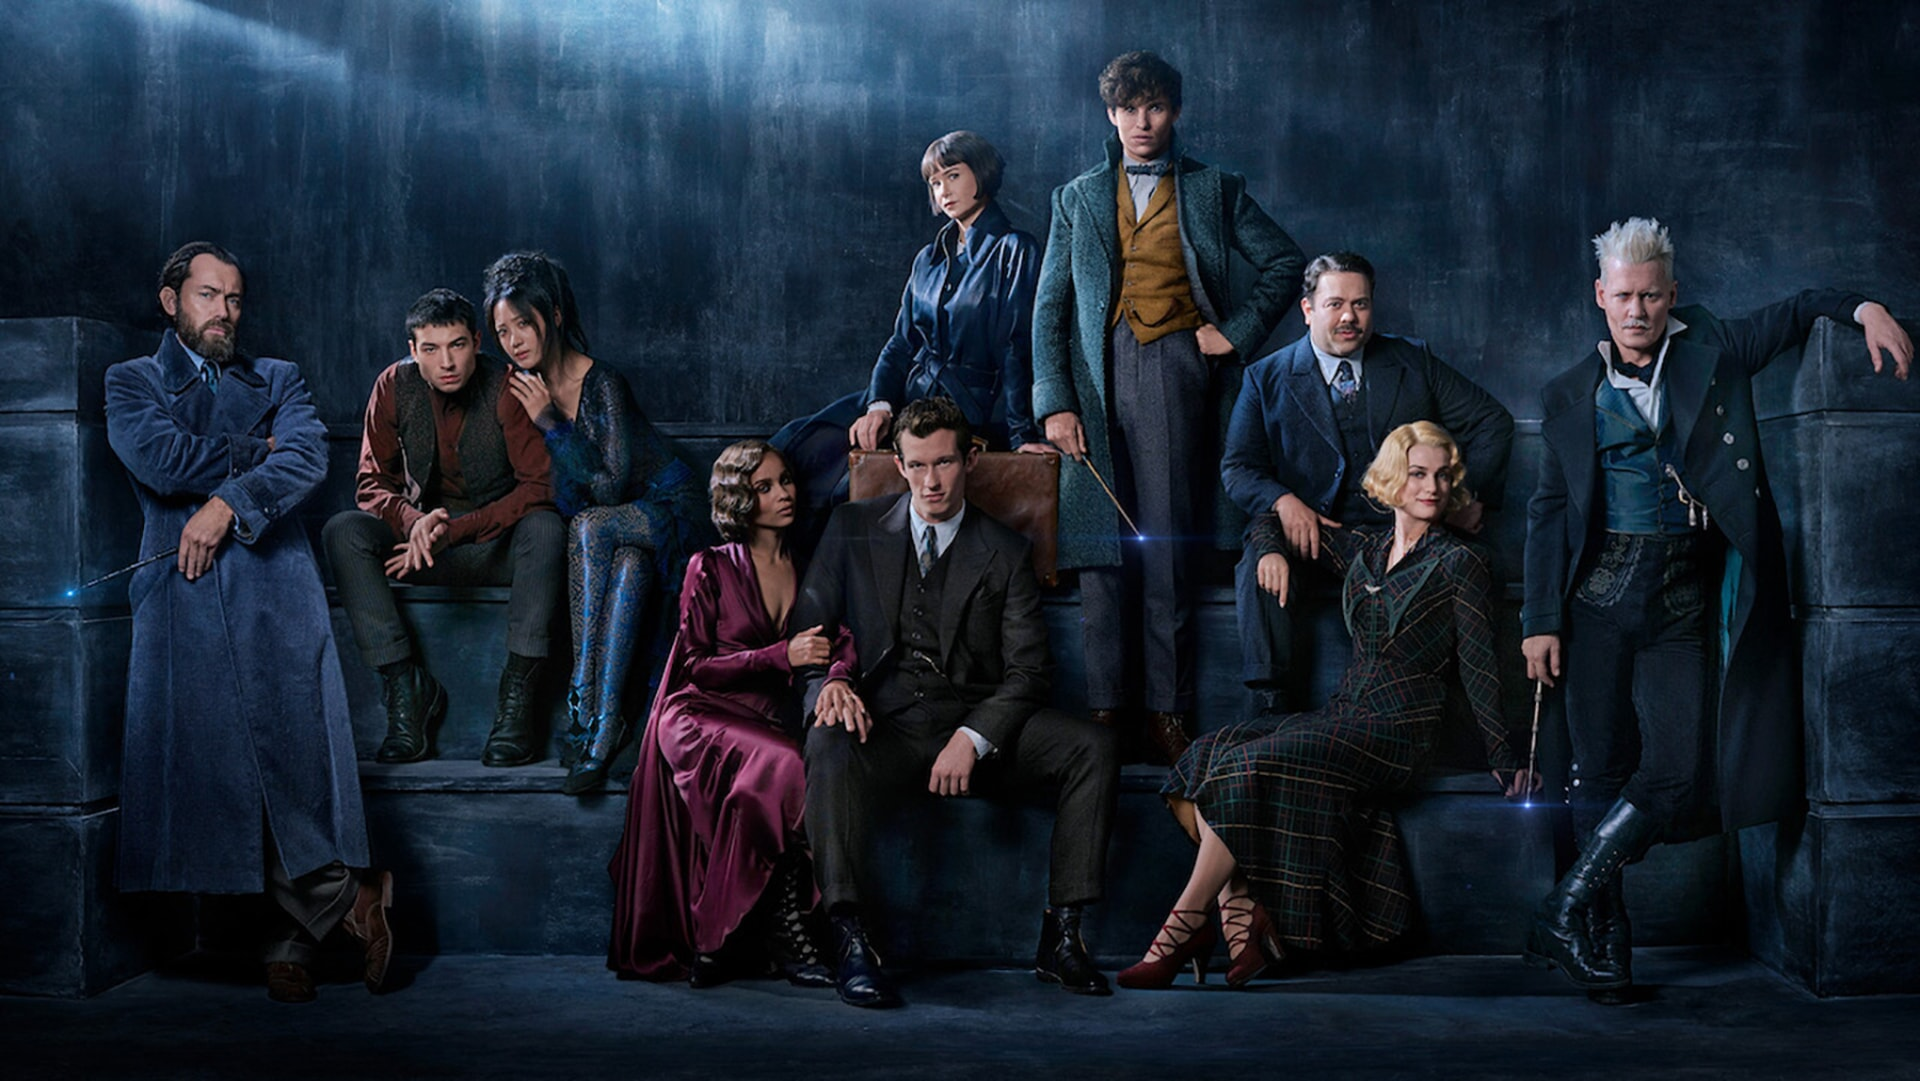 The cast of Fantastic Beasts: The Crimes of Grindelwald